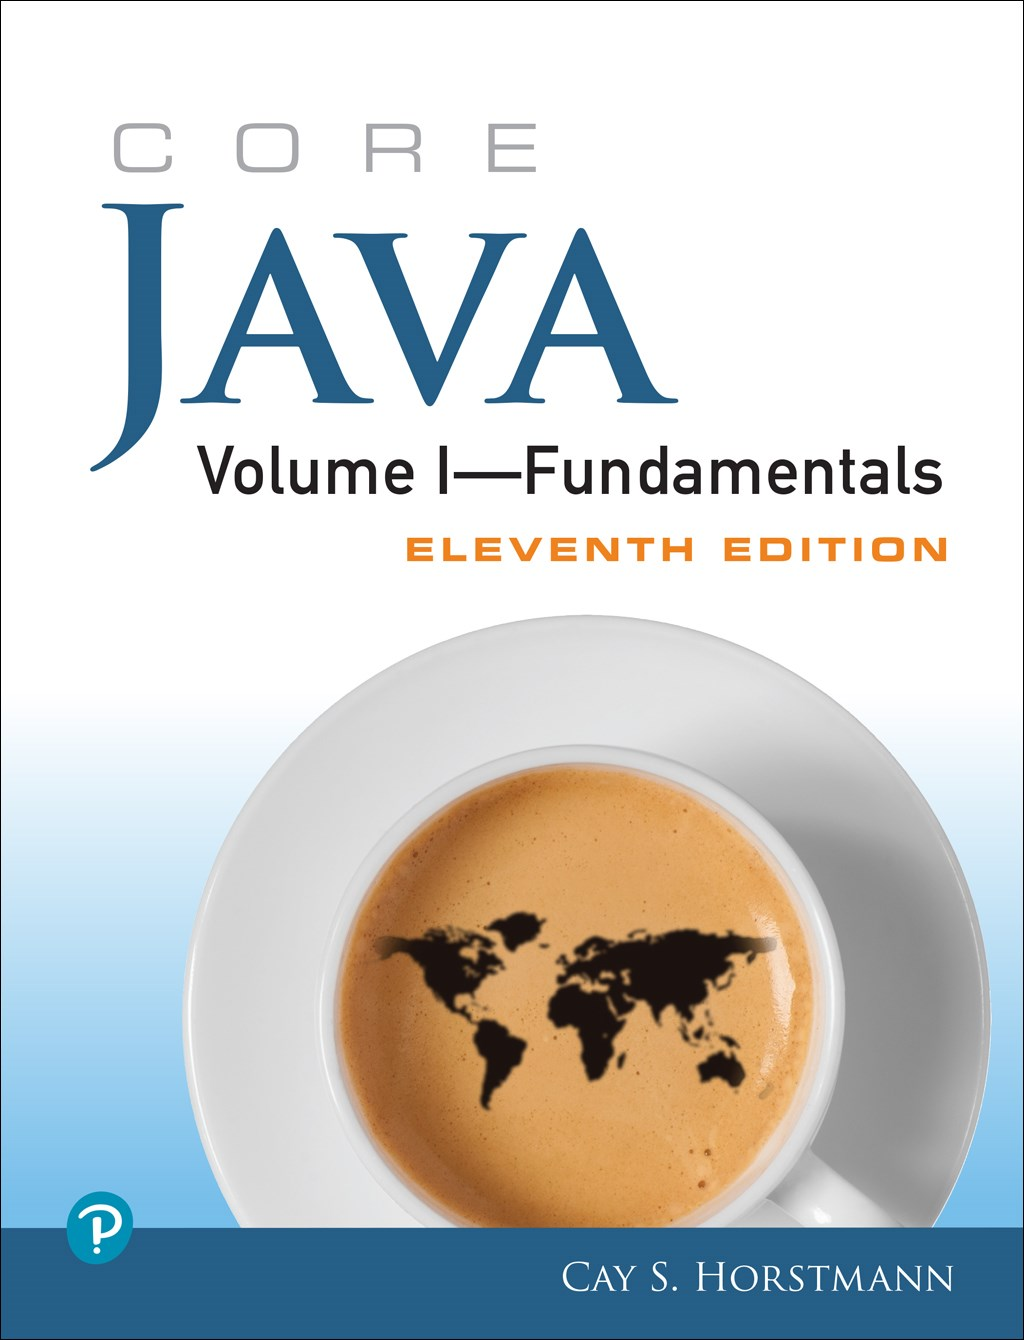 Core Java Volume I--Fundamentals, 11th Edition